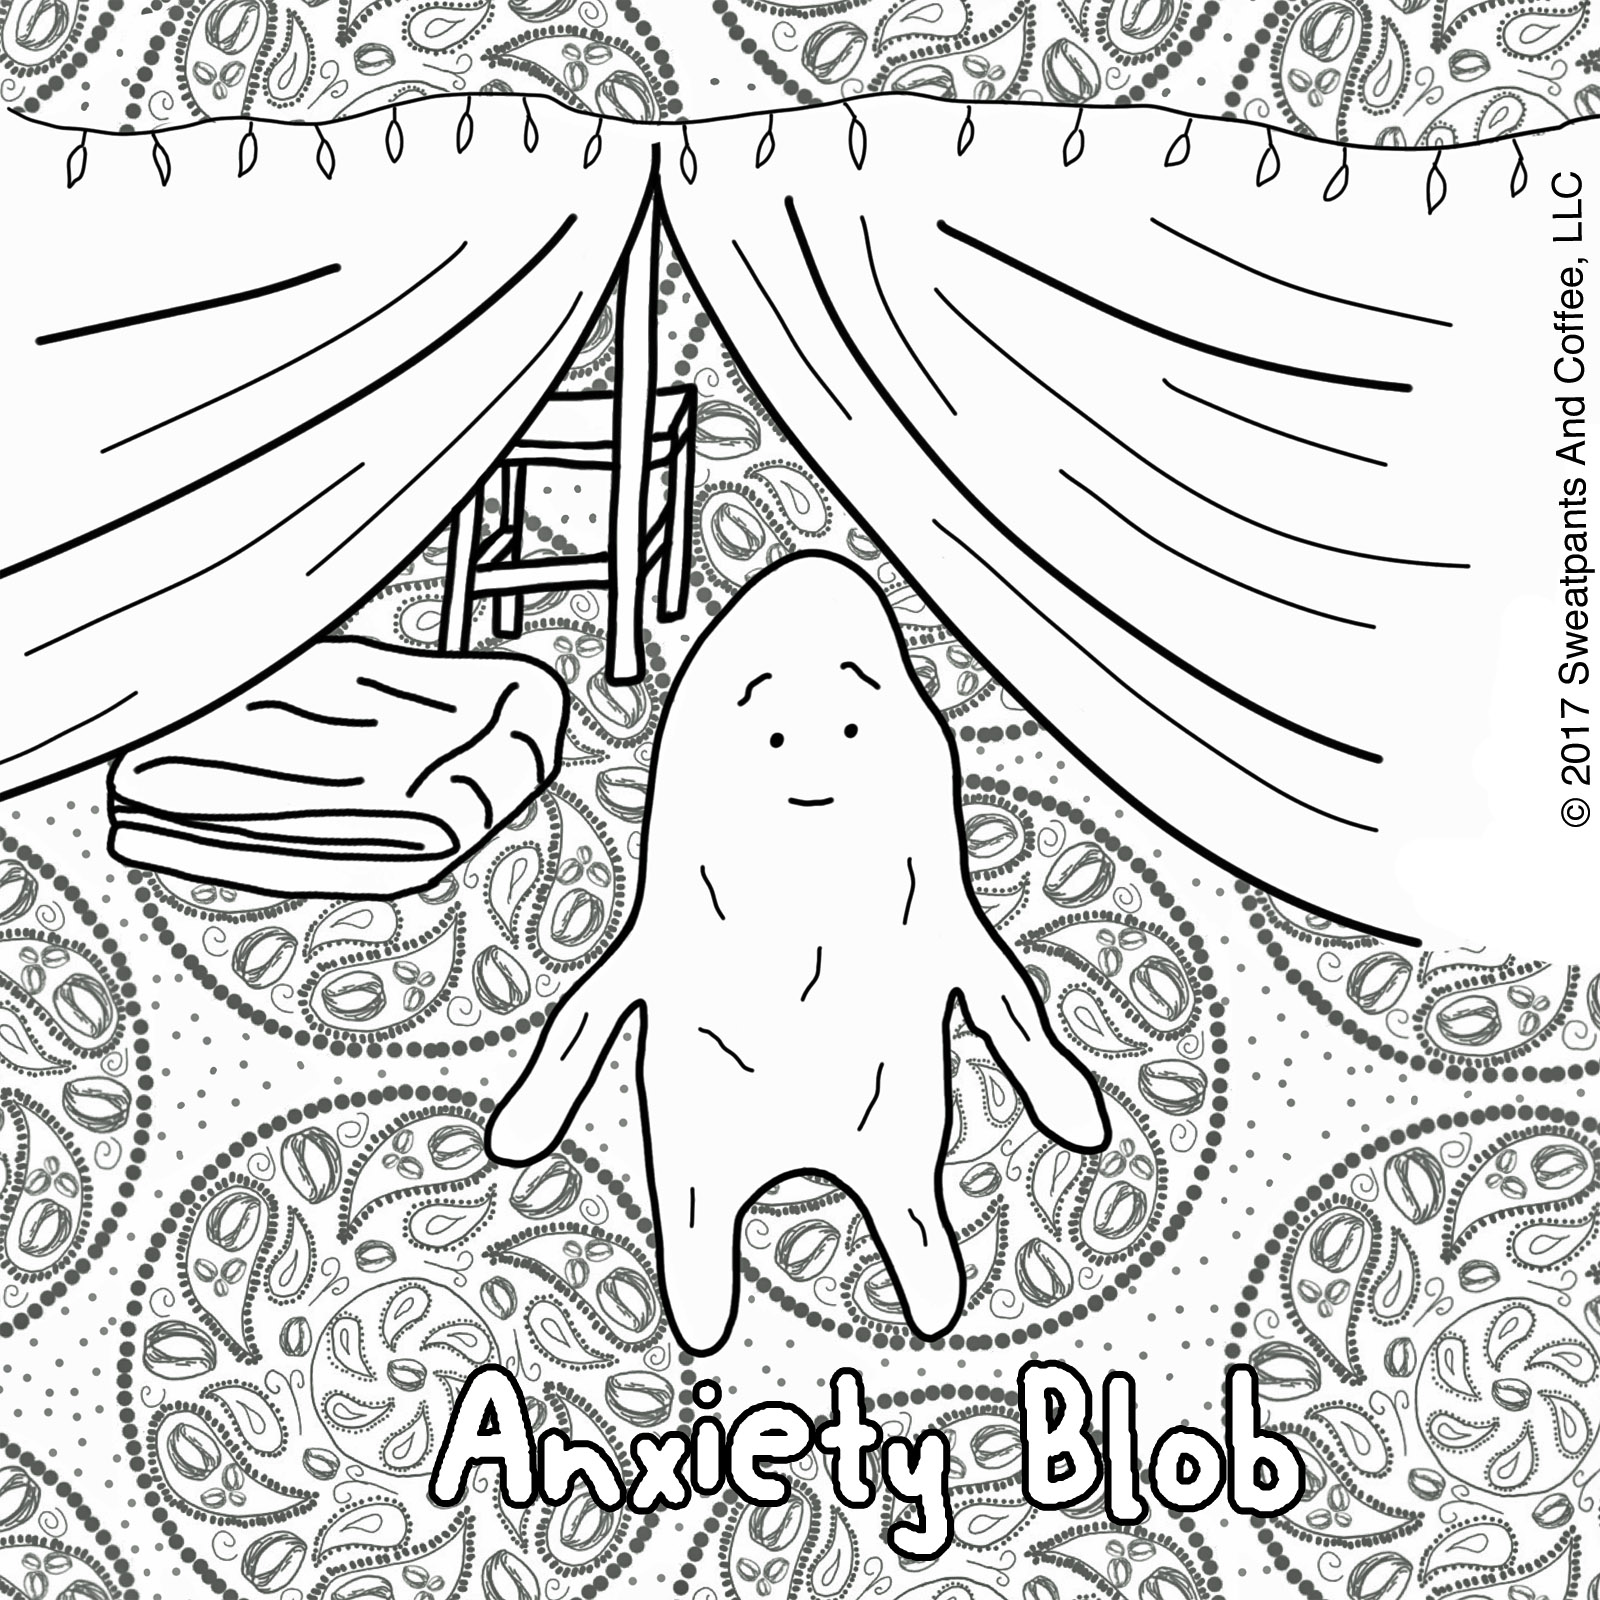 Anxiety Blob Coloring Page Let 39 s Build a Blanket Fort